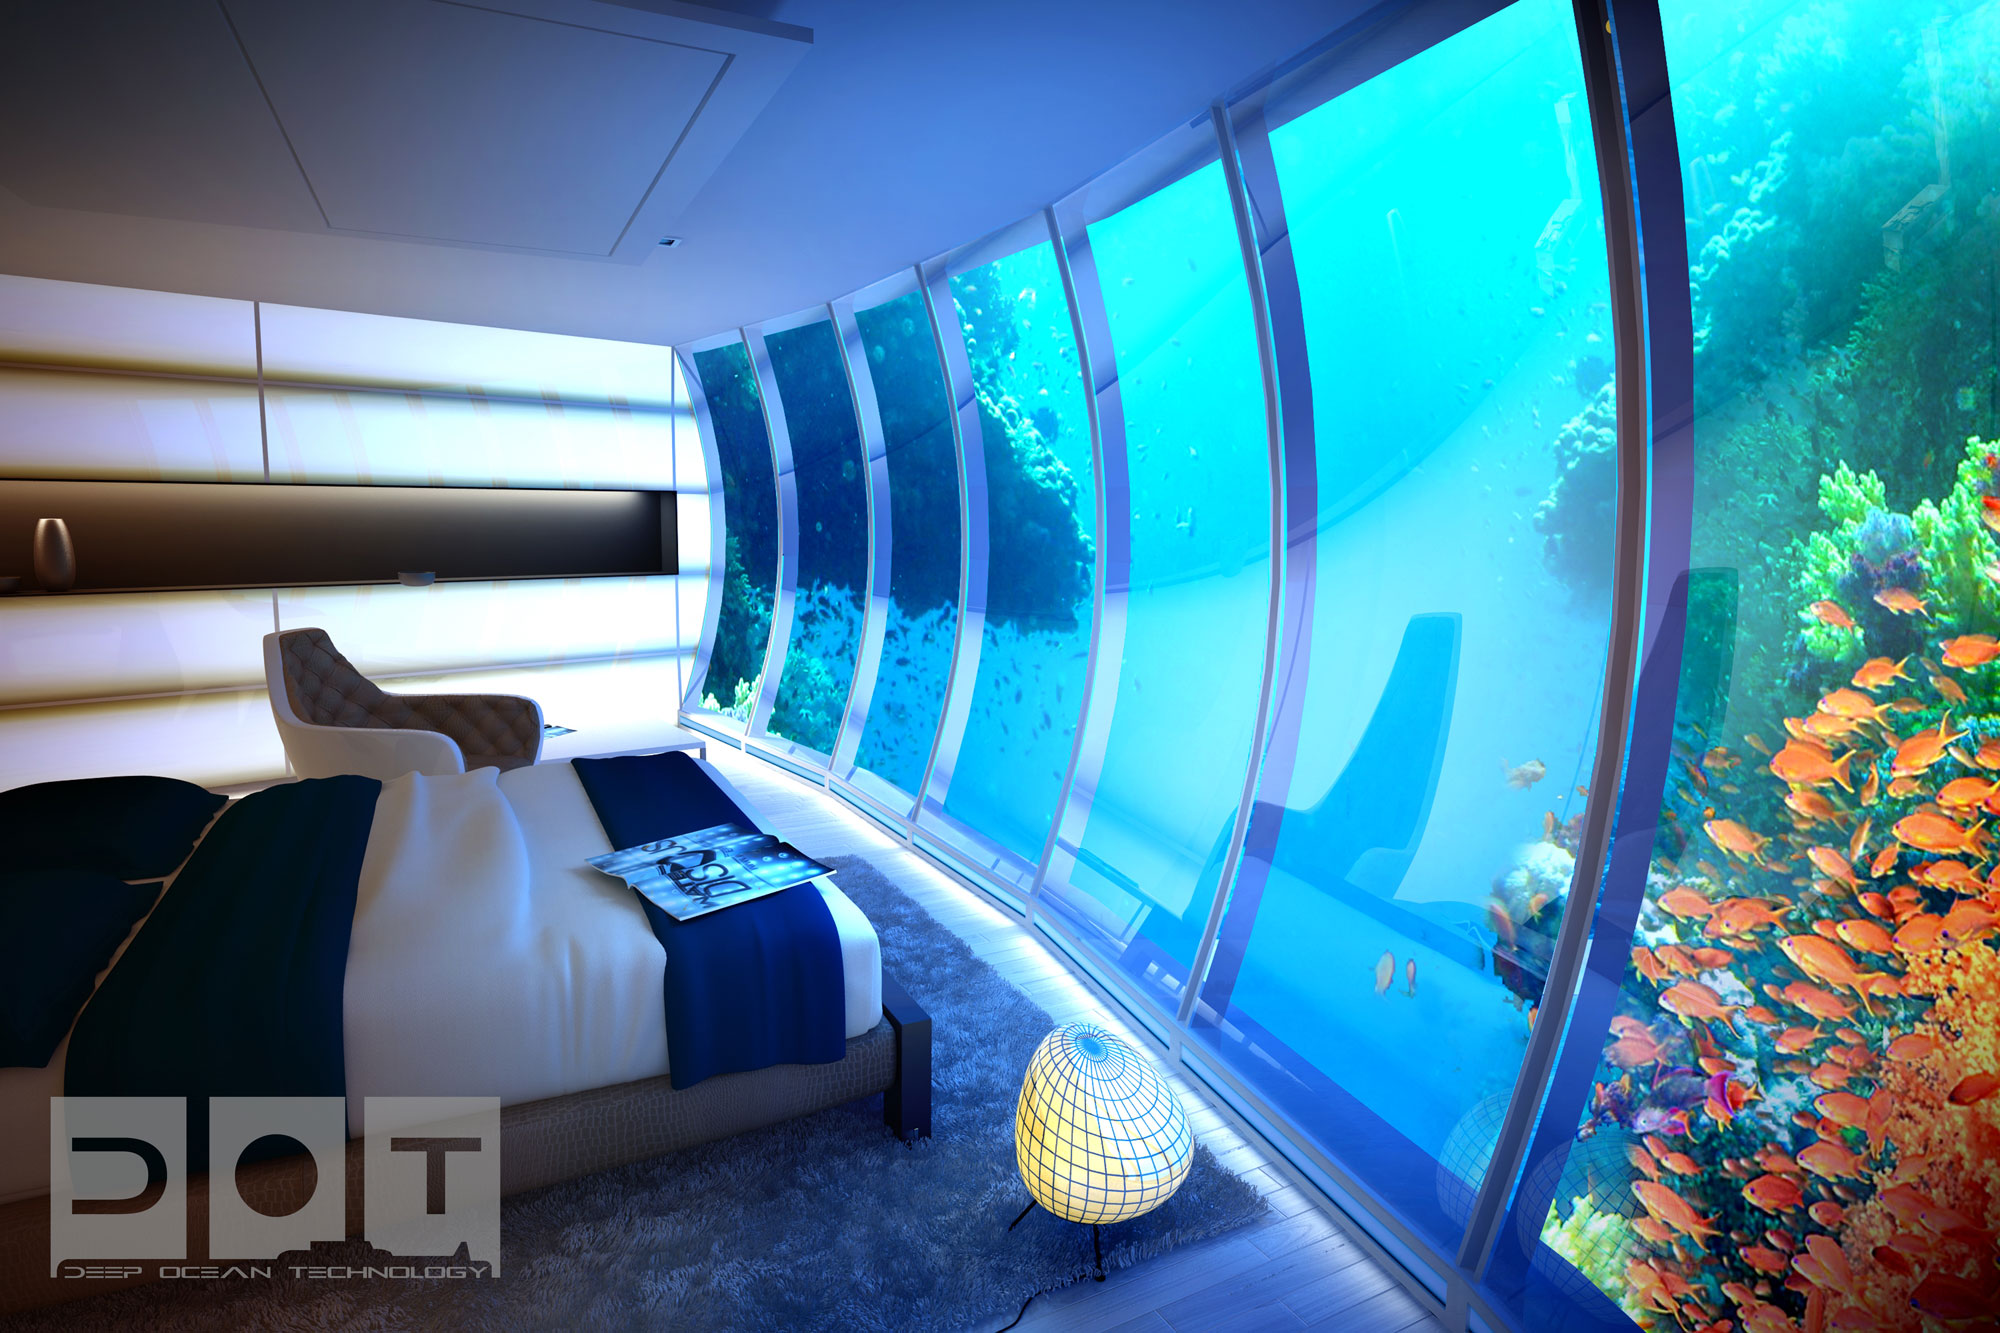 The Water Discus Underwater Hotel planned for Dubai (12)